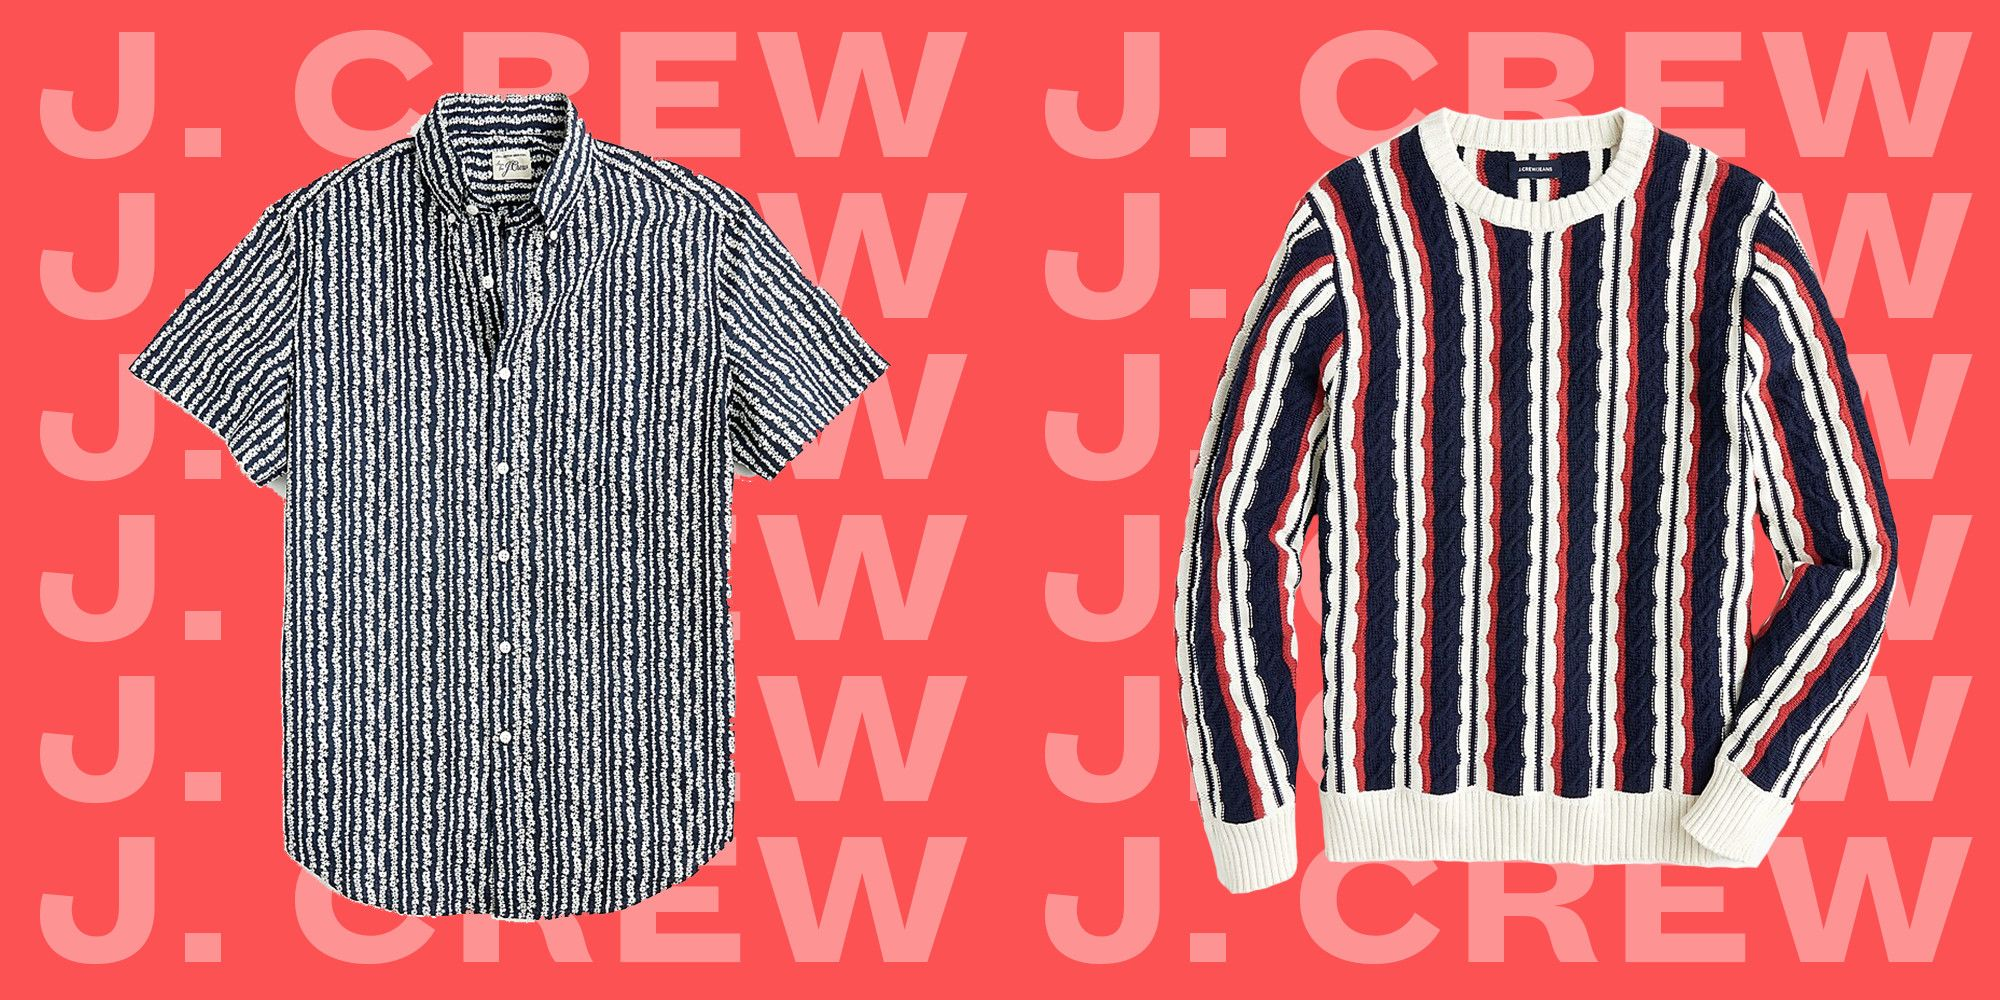 J.Crew Is Taking an Extra 50% Off Sale Items for an Extremely Limited Time